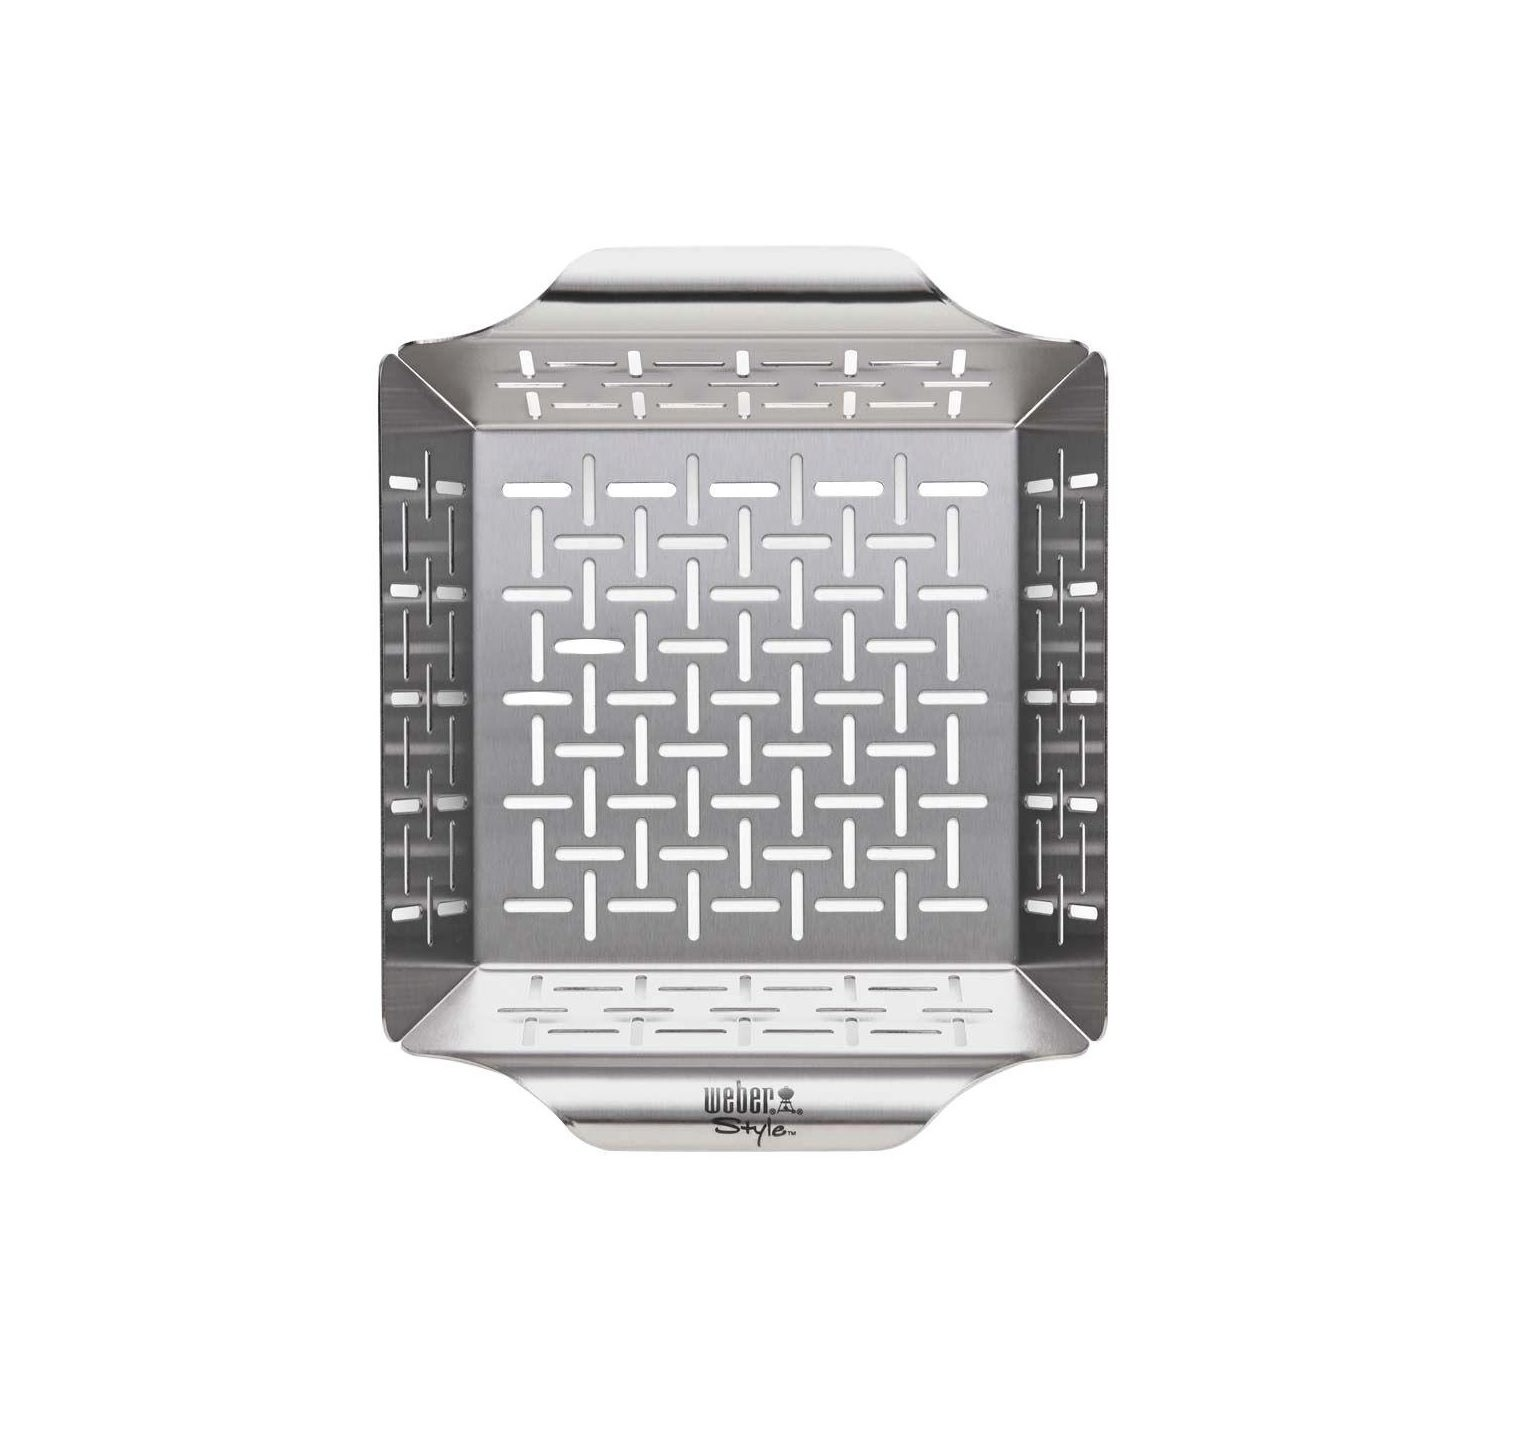 Weber deluxe stainless steel deluxe grilling basket - small